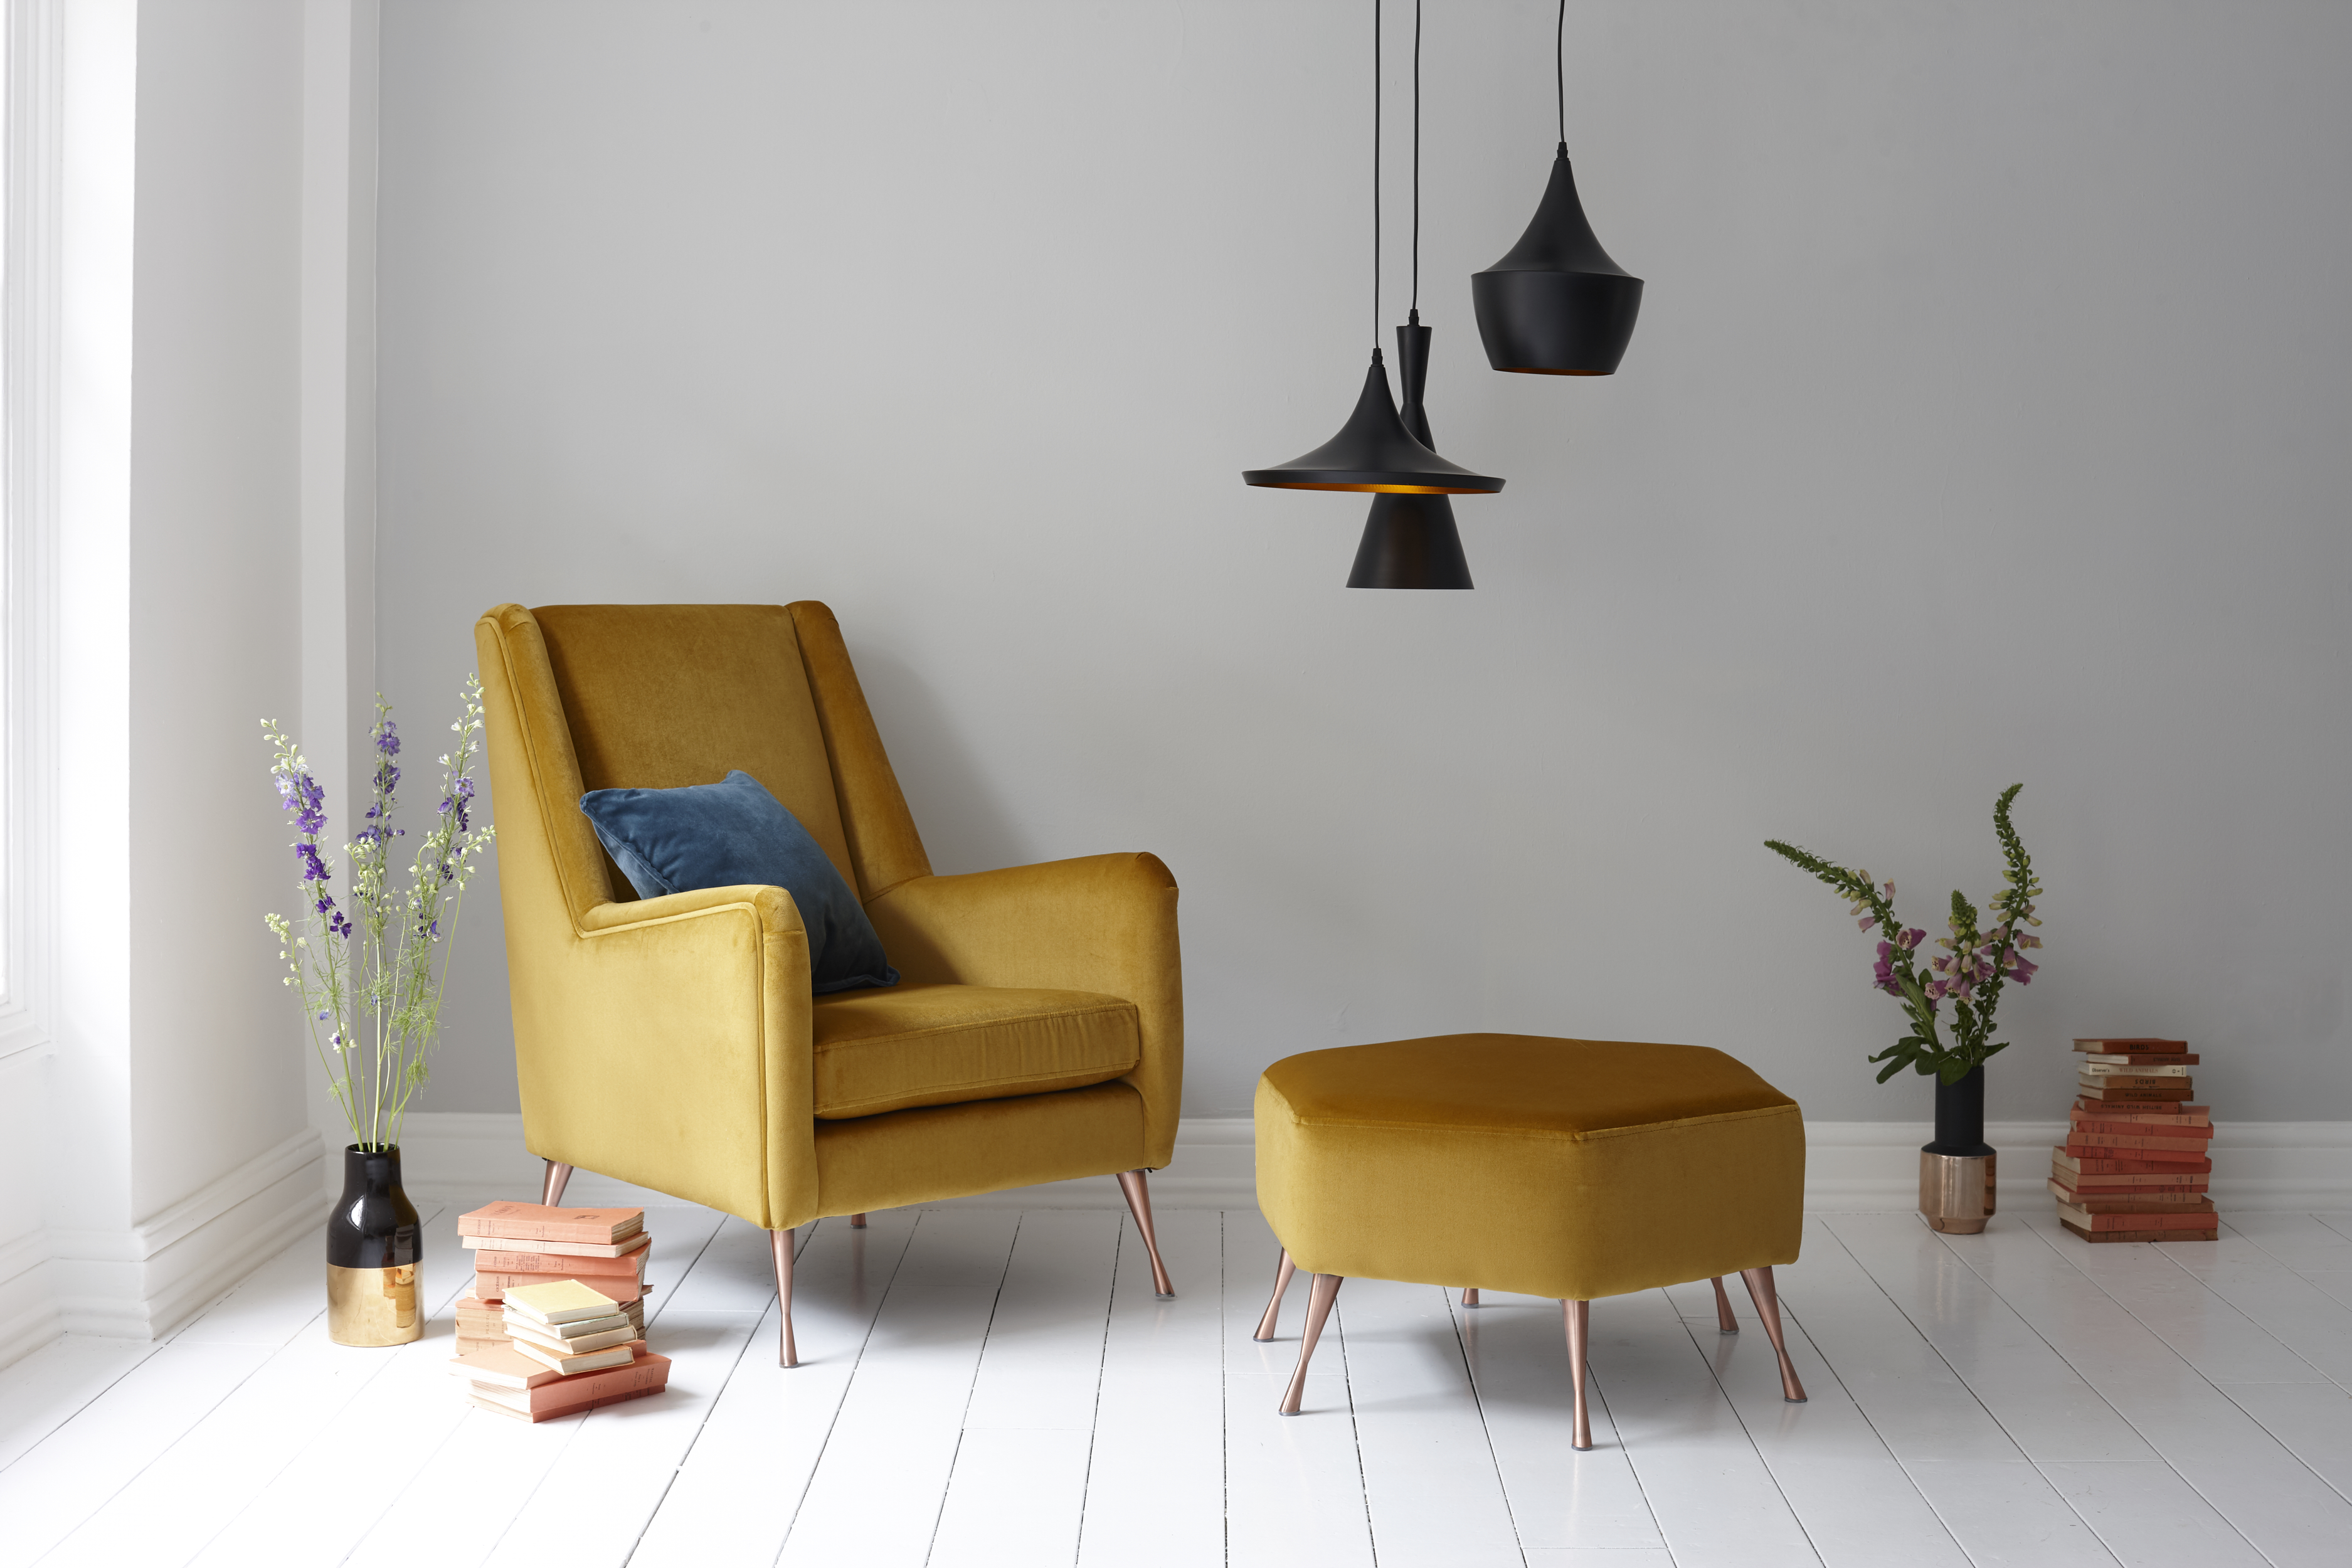 Mustard velvet armchair with footstool. Interior photography by Joanna Henderson